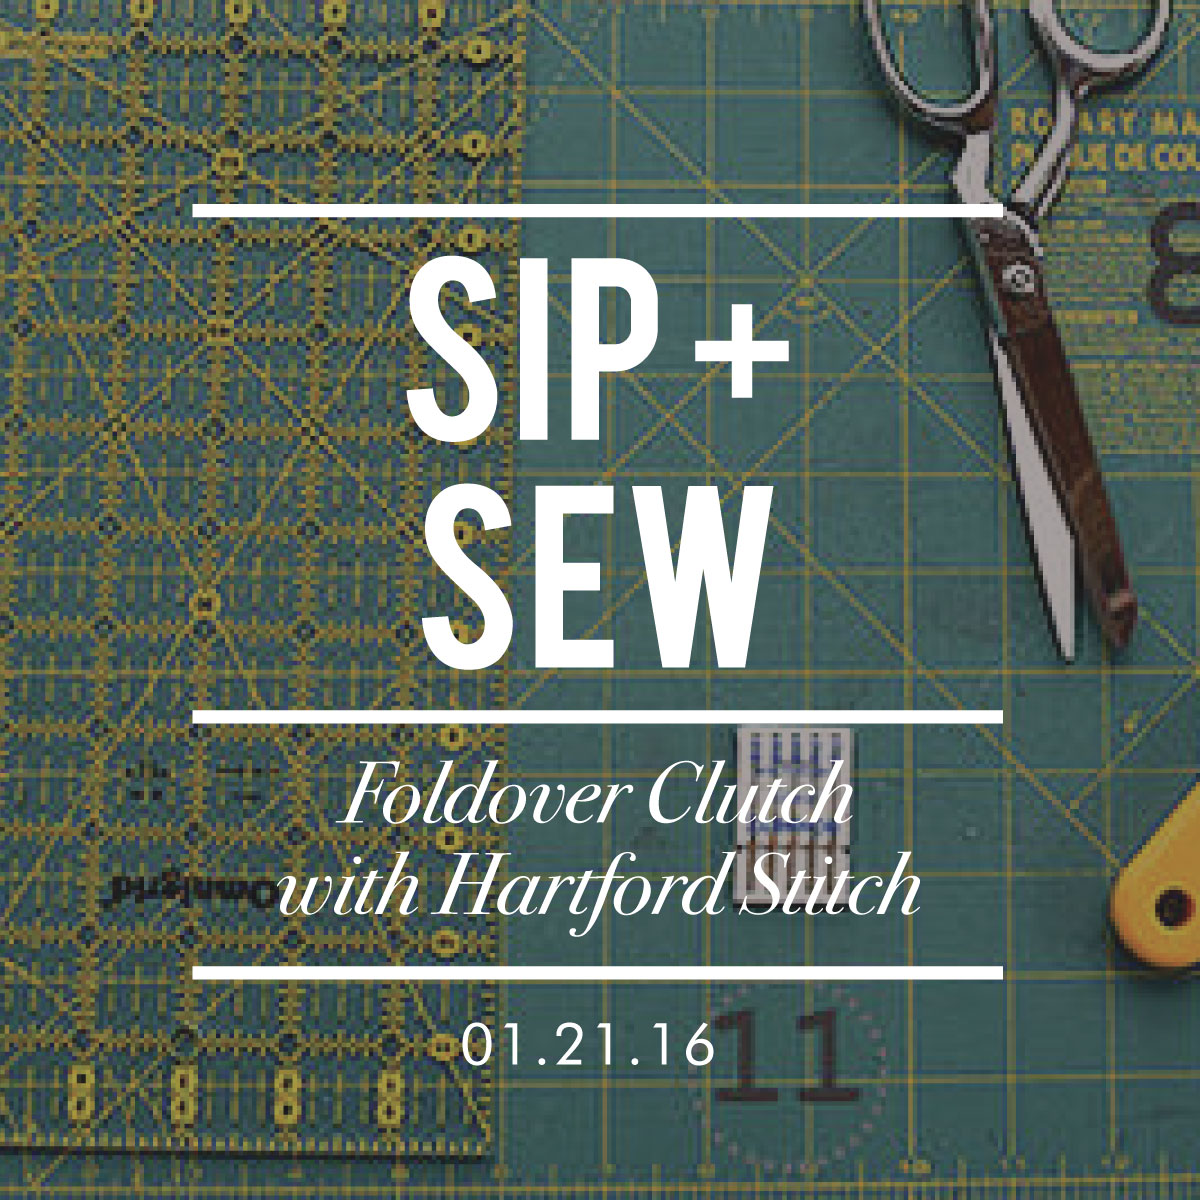 http://hartfordprints.com/shop/sip-sow-intro-sewing-january-21st-2016/